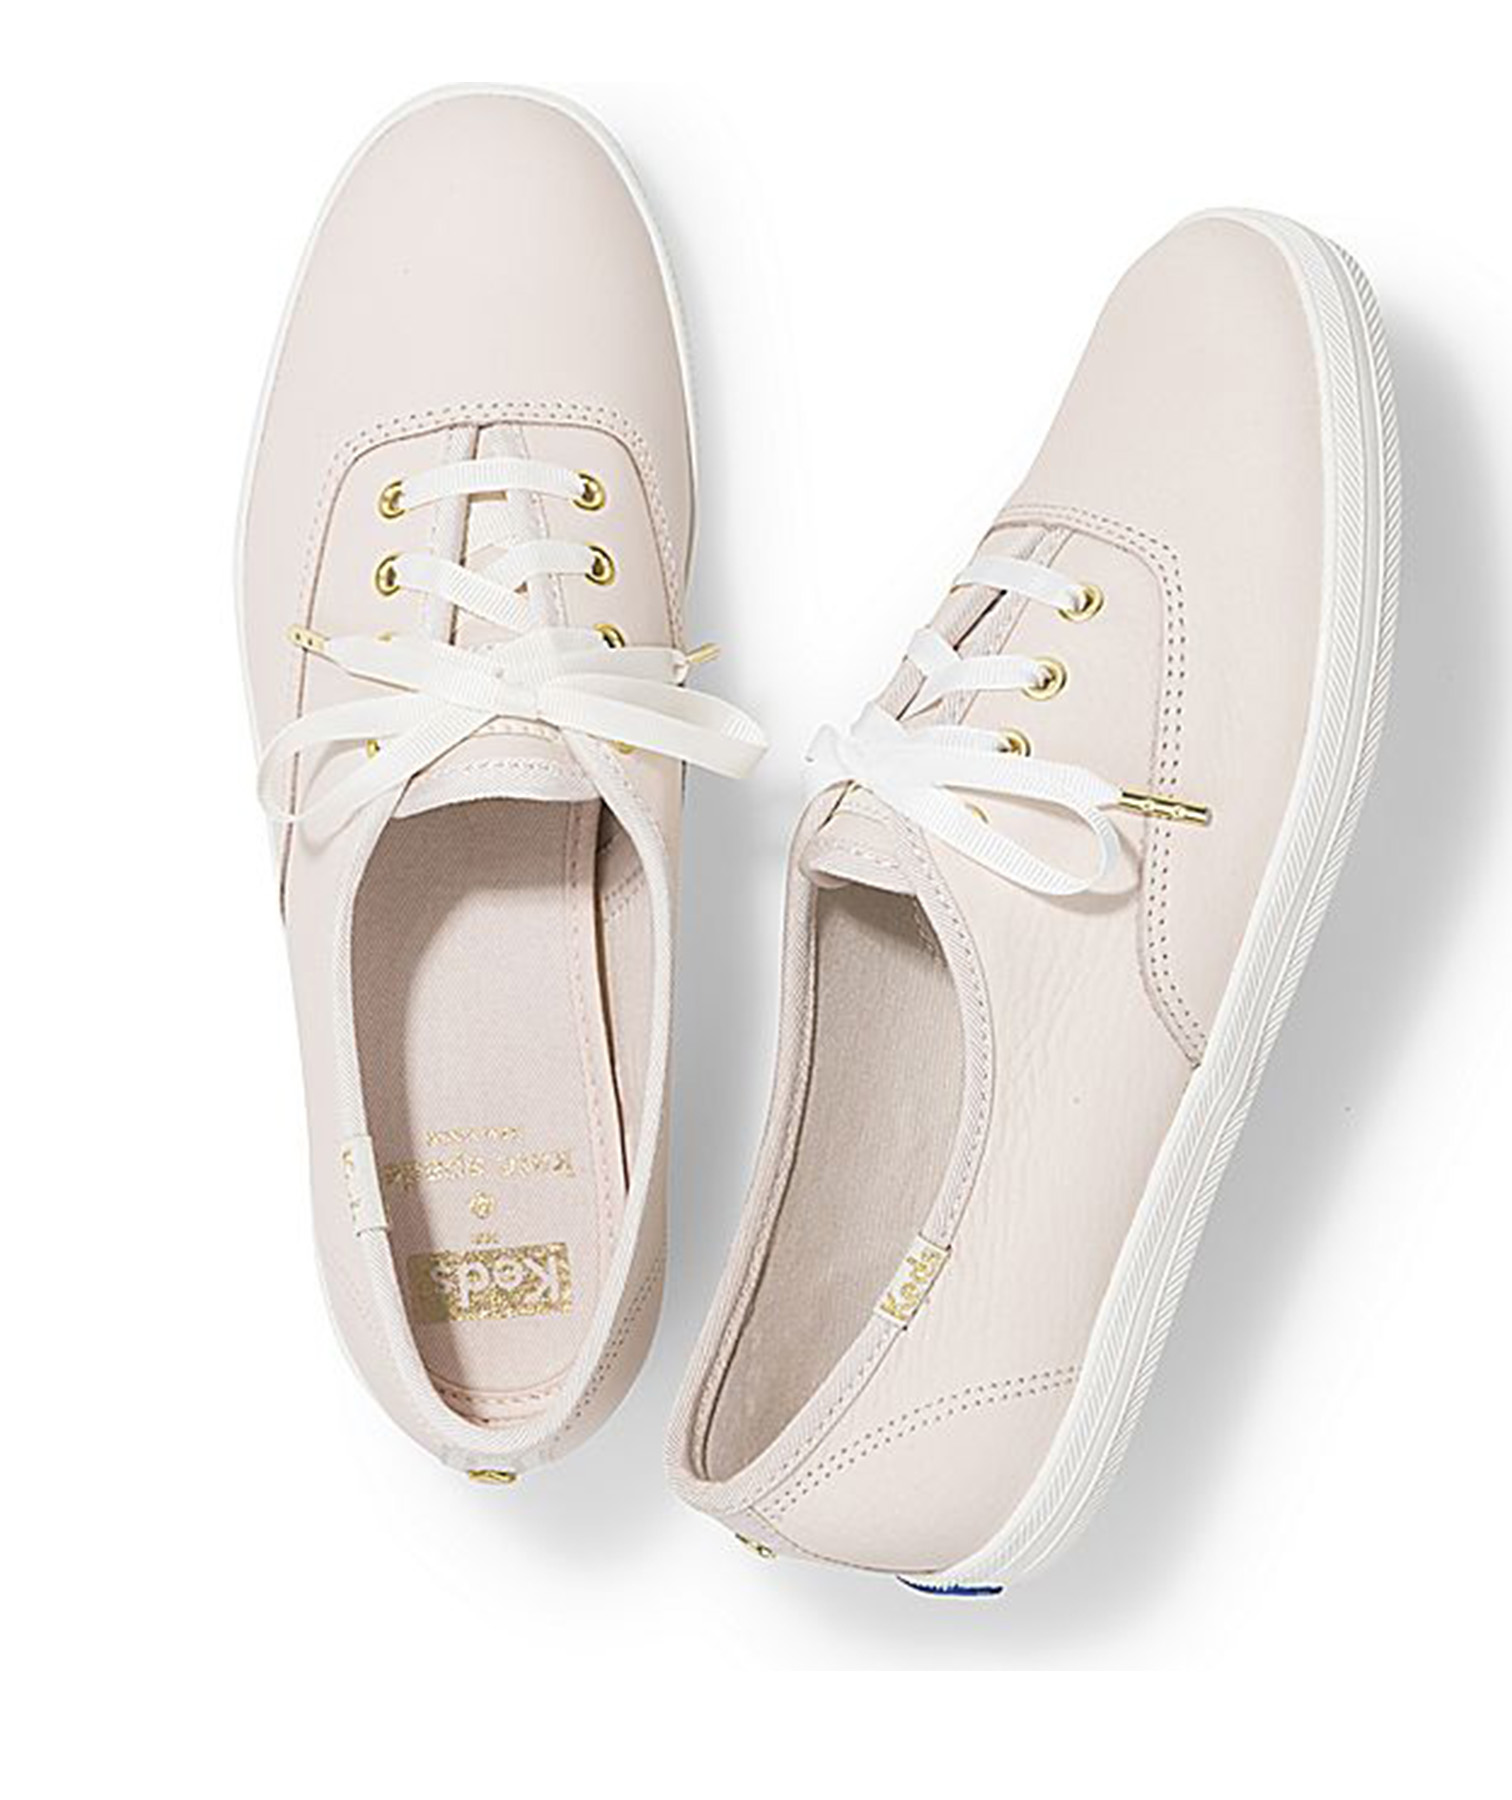 KEDS x Kate Spade New York Champion Leather Sneakers in blush color